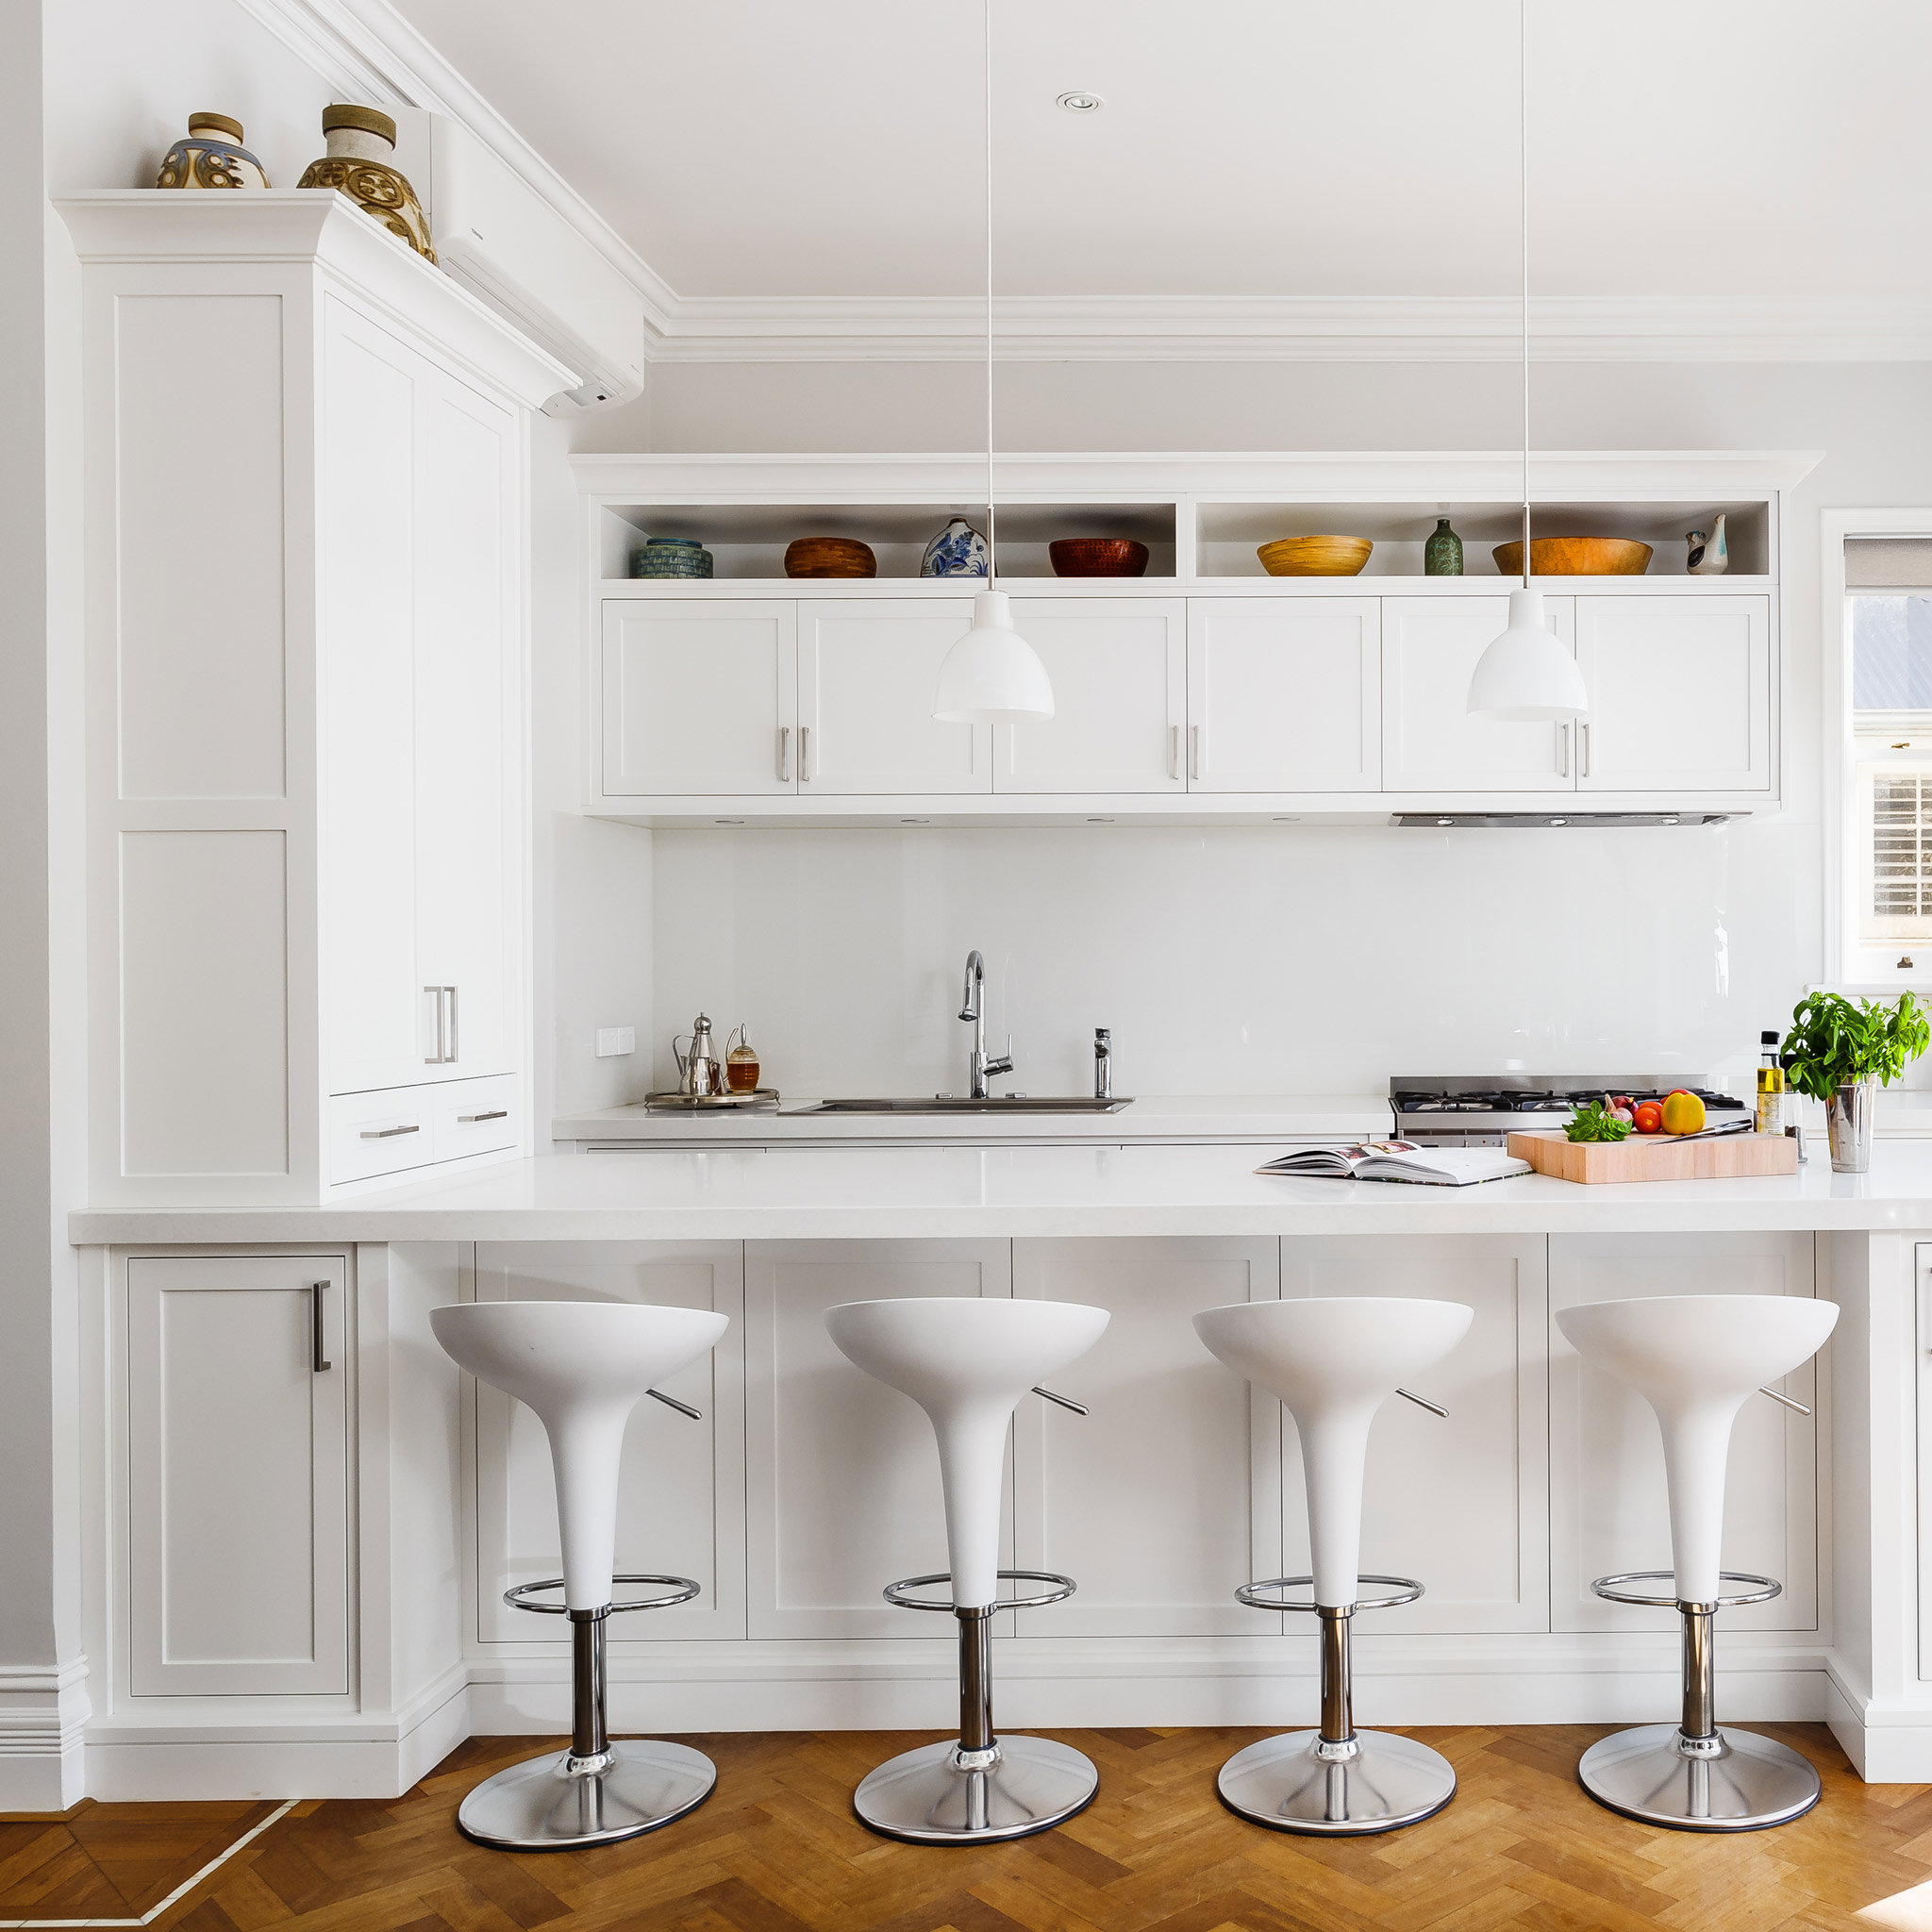 white-hamptons-kitchen-2.jpg